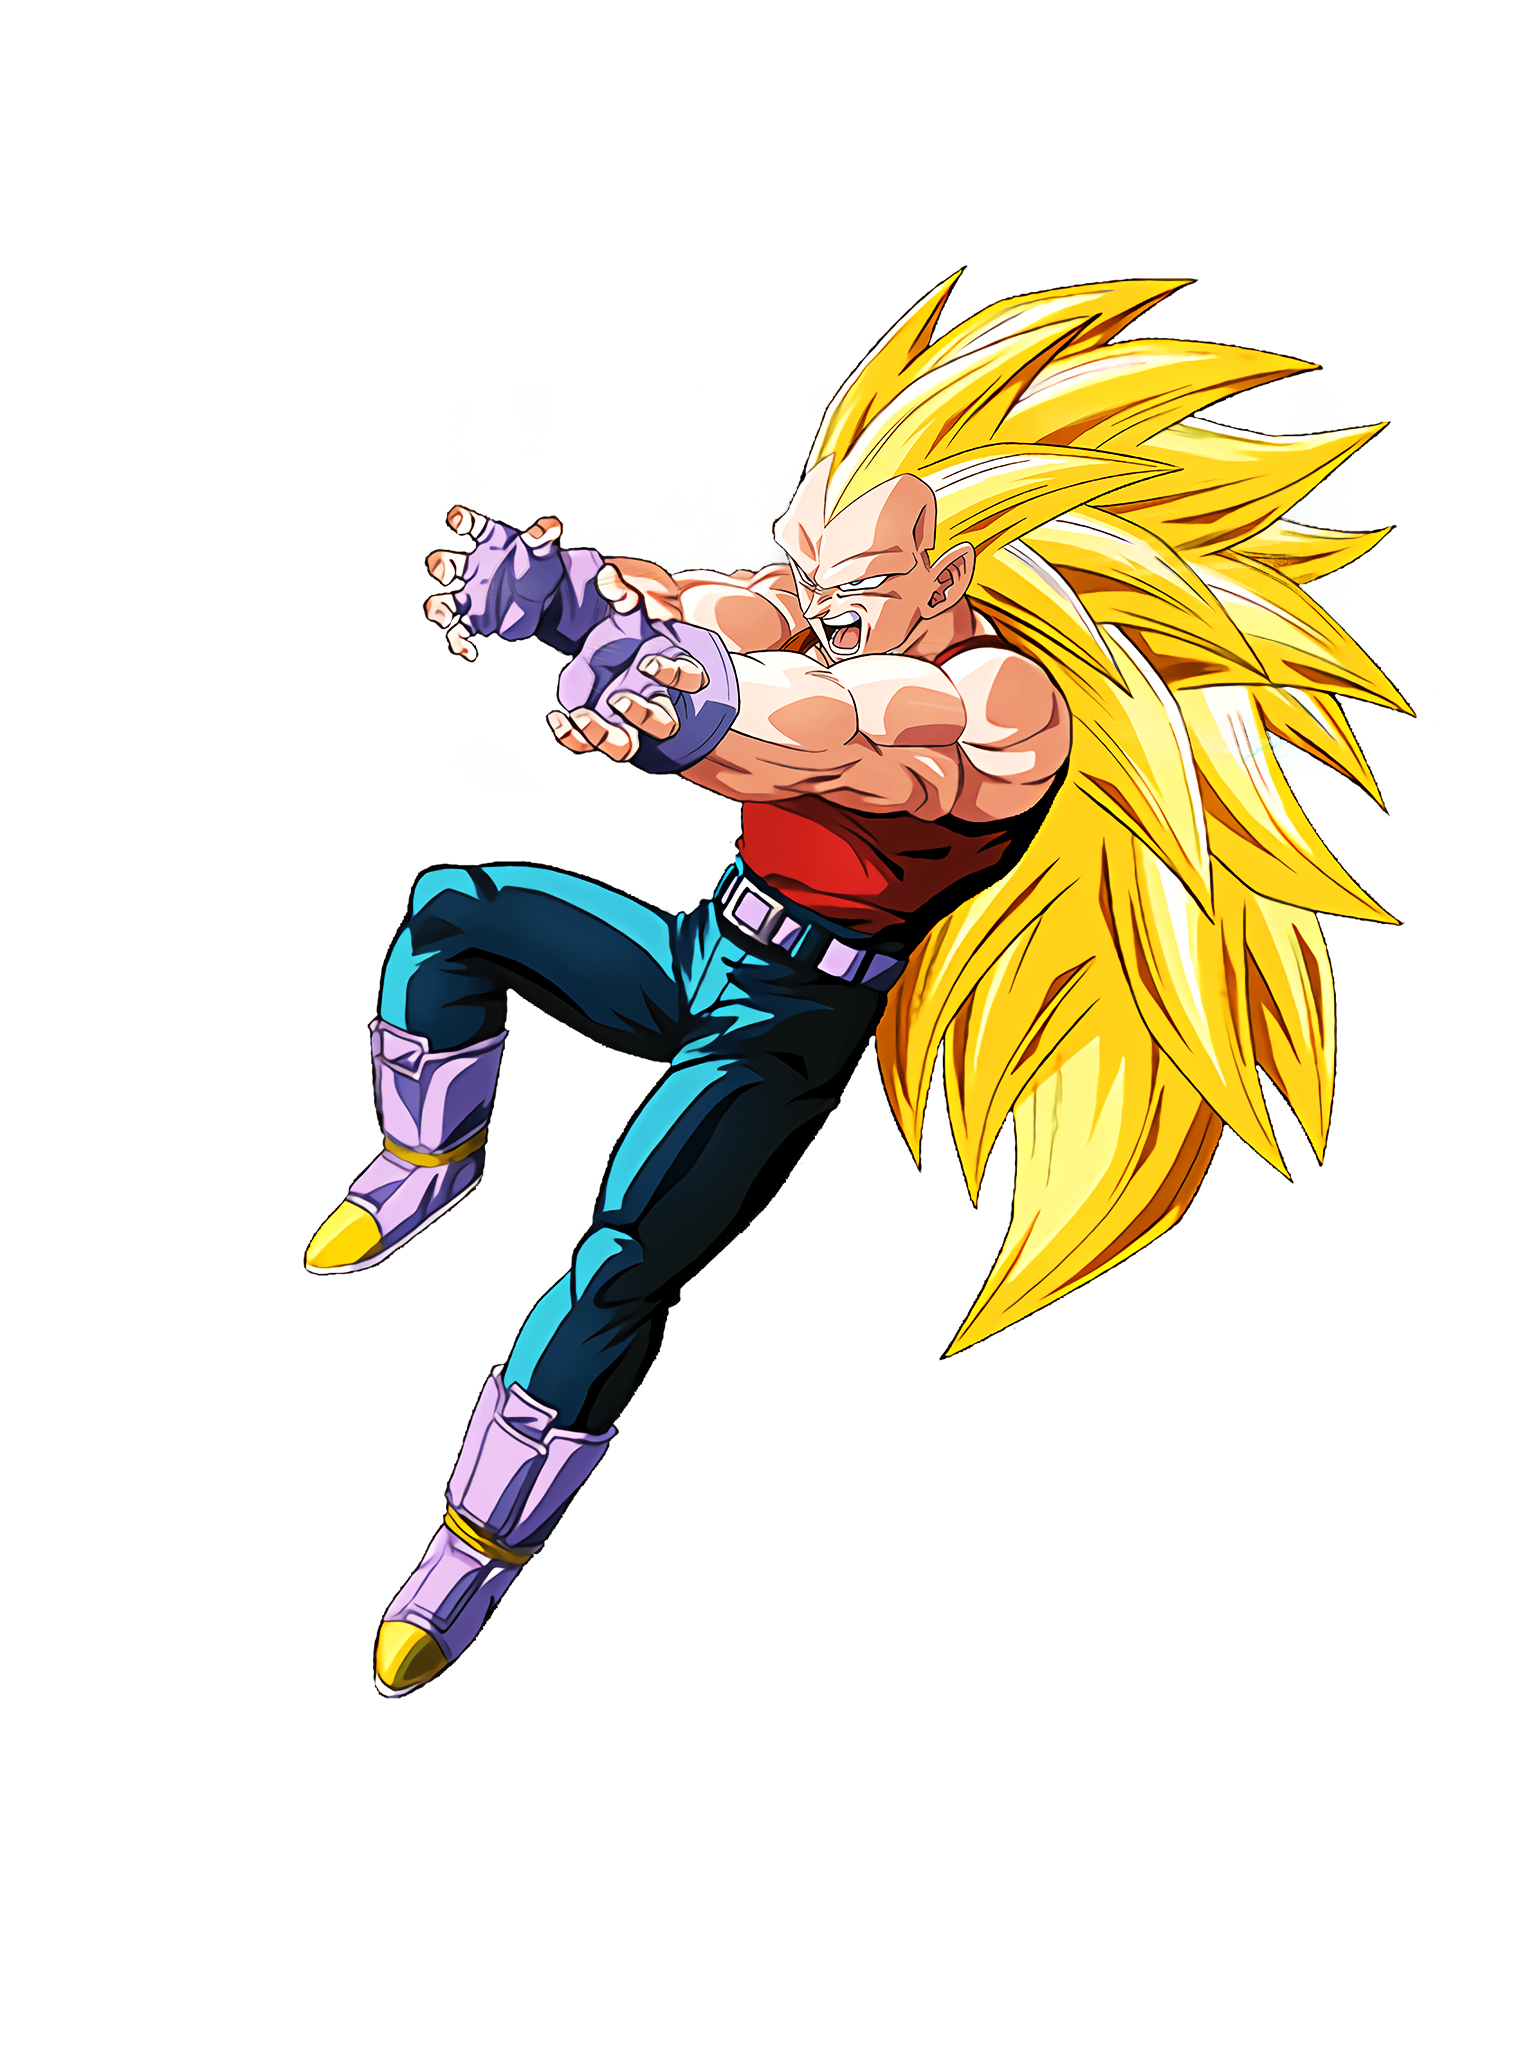 Limitless Saiyan Super Saiyan 3 Vegeta GT Render (Dragon Ball Z Dokkan Battle) .png